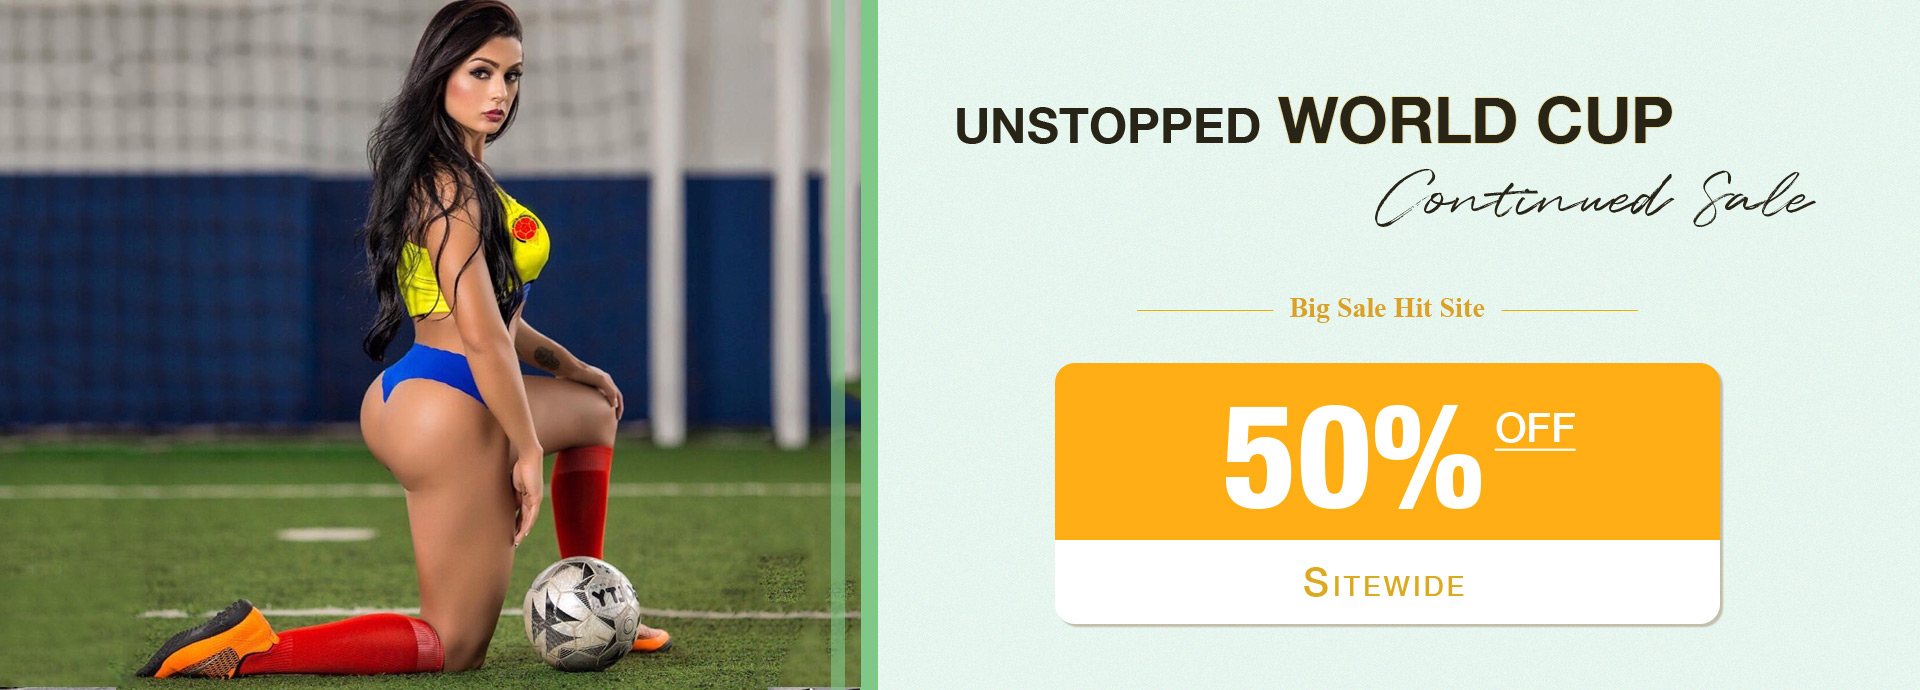 Unstopped World Cup Continued Sale